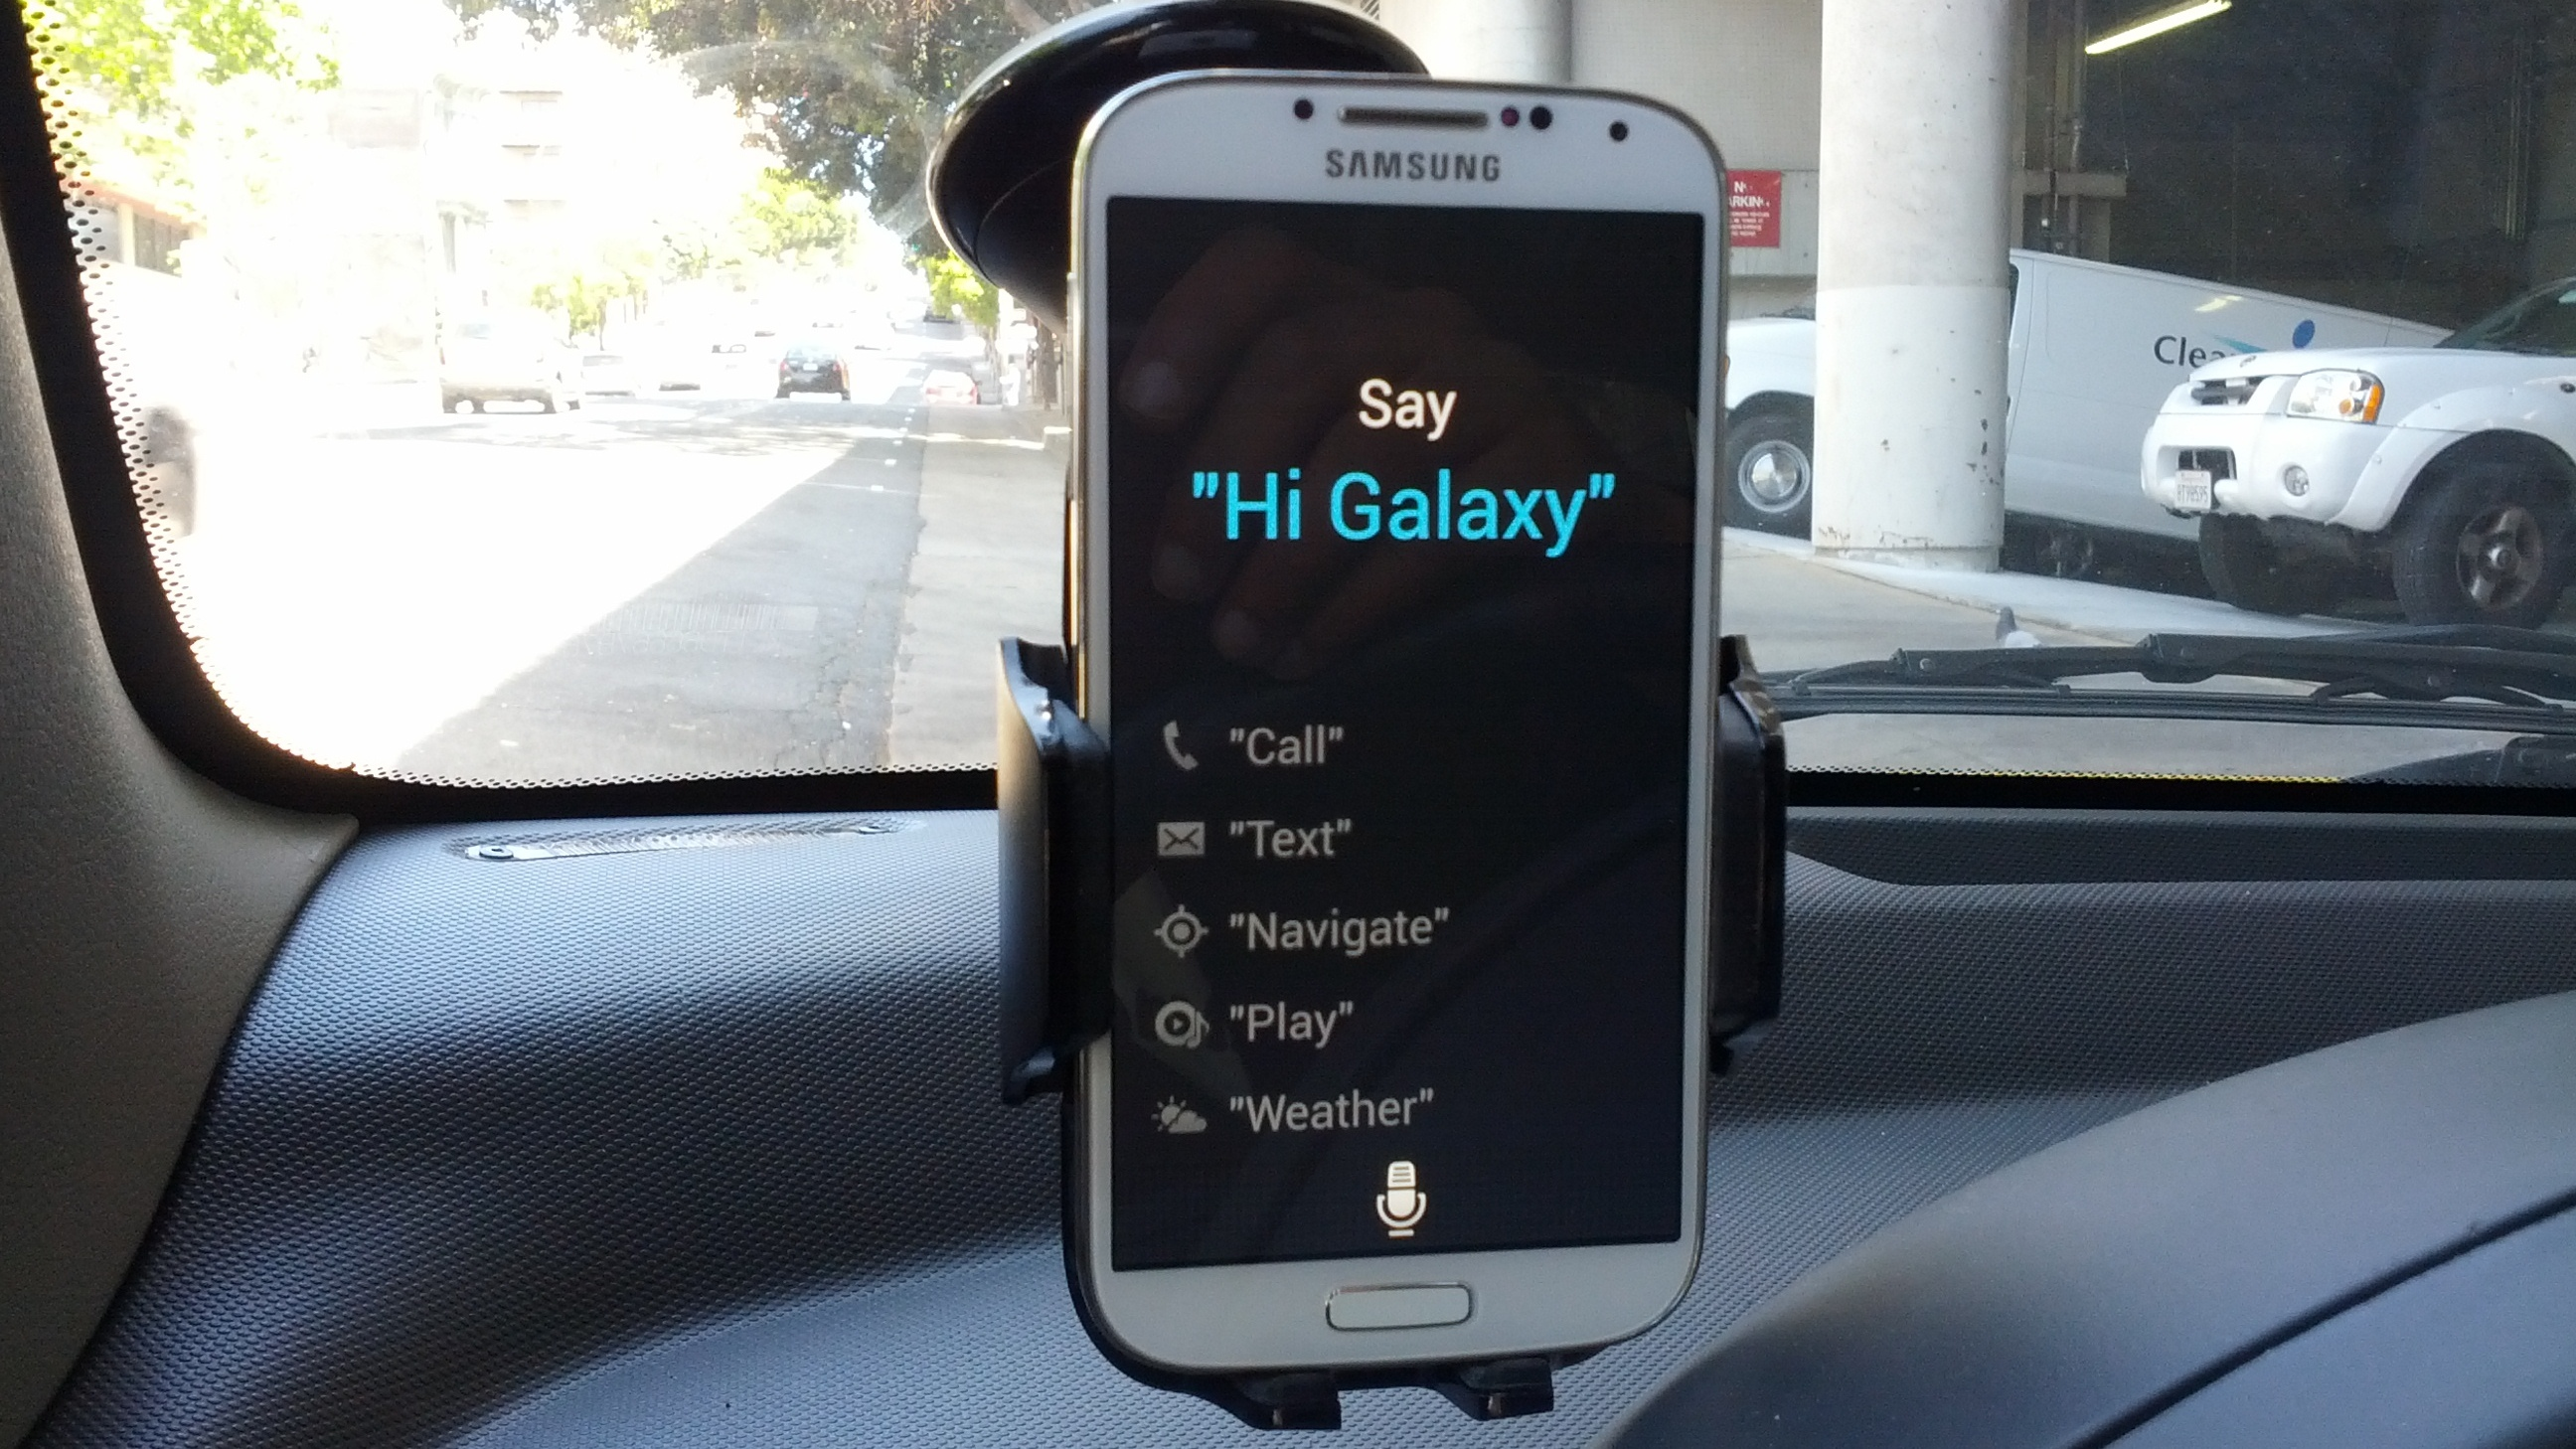 S-Voice Drive in the Samsung Galaxy S4